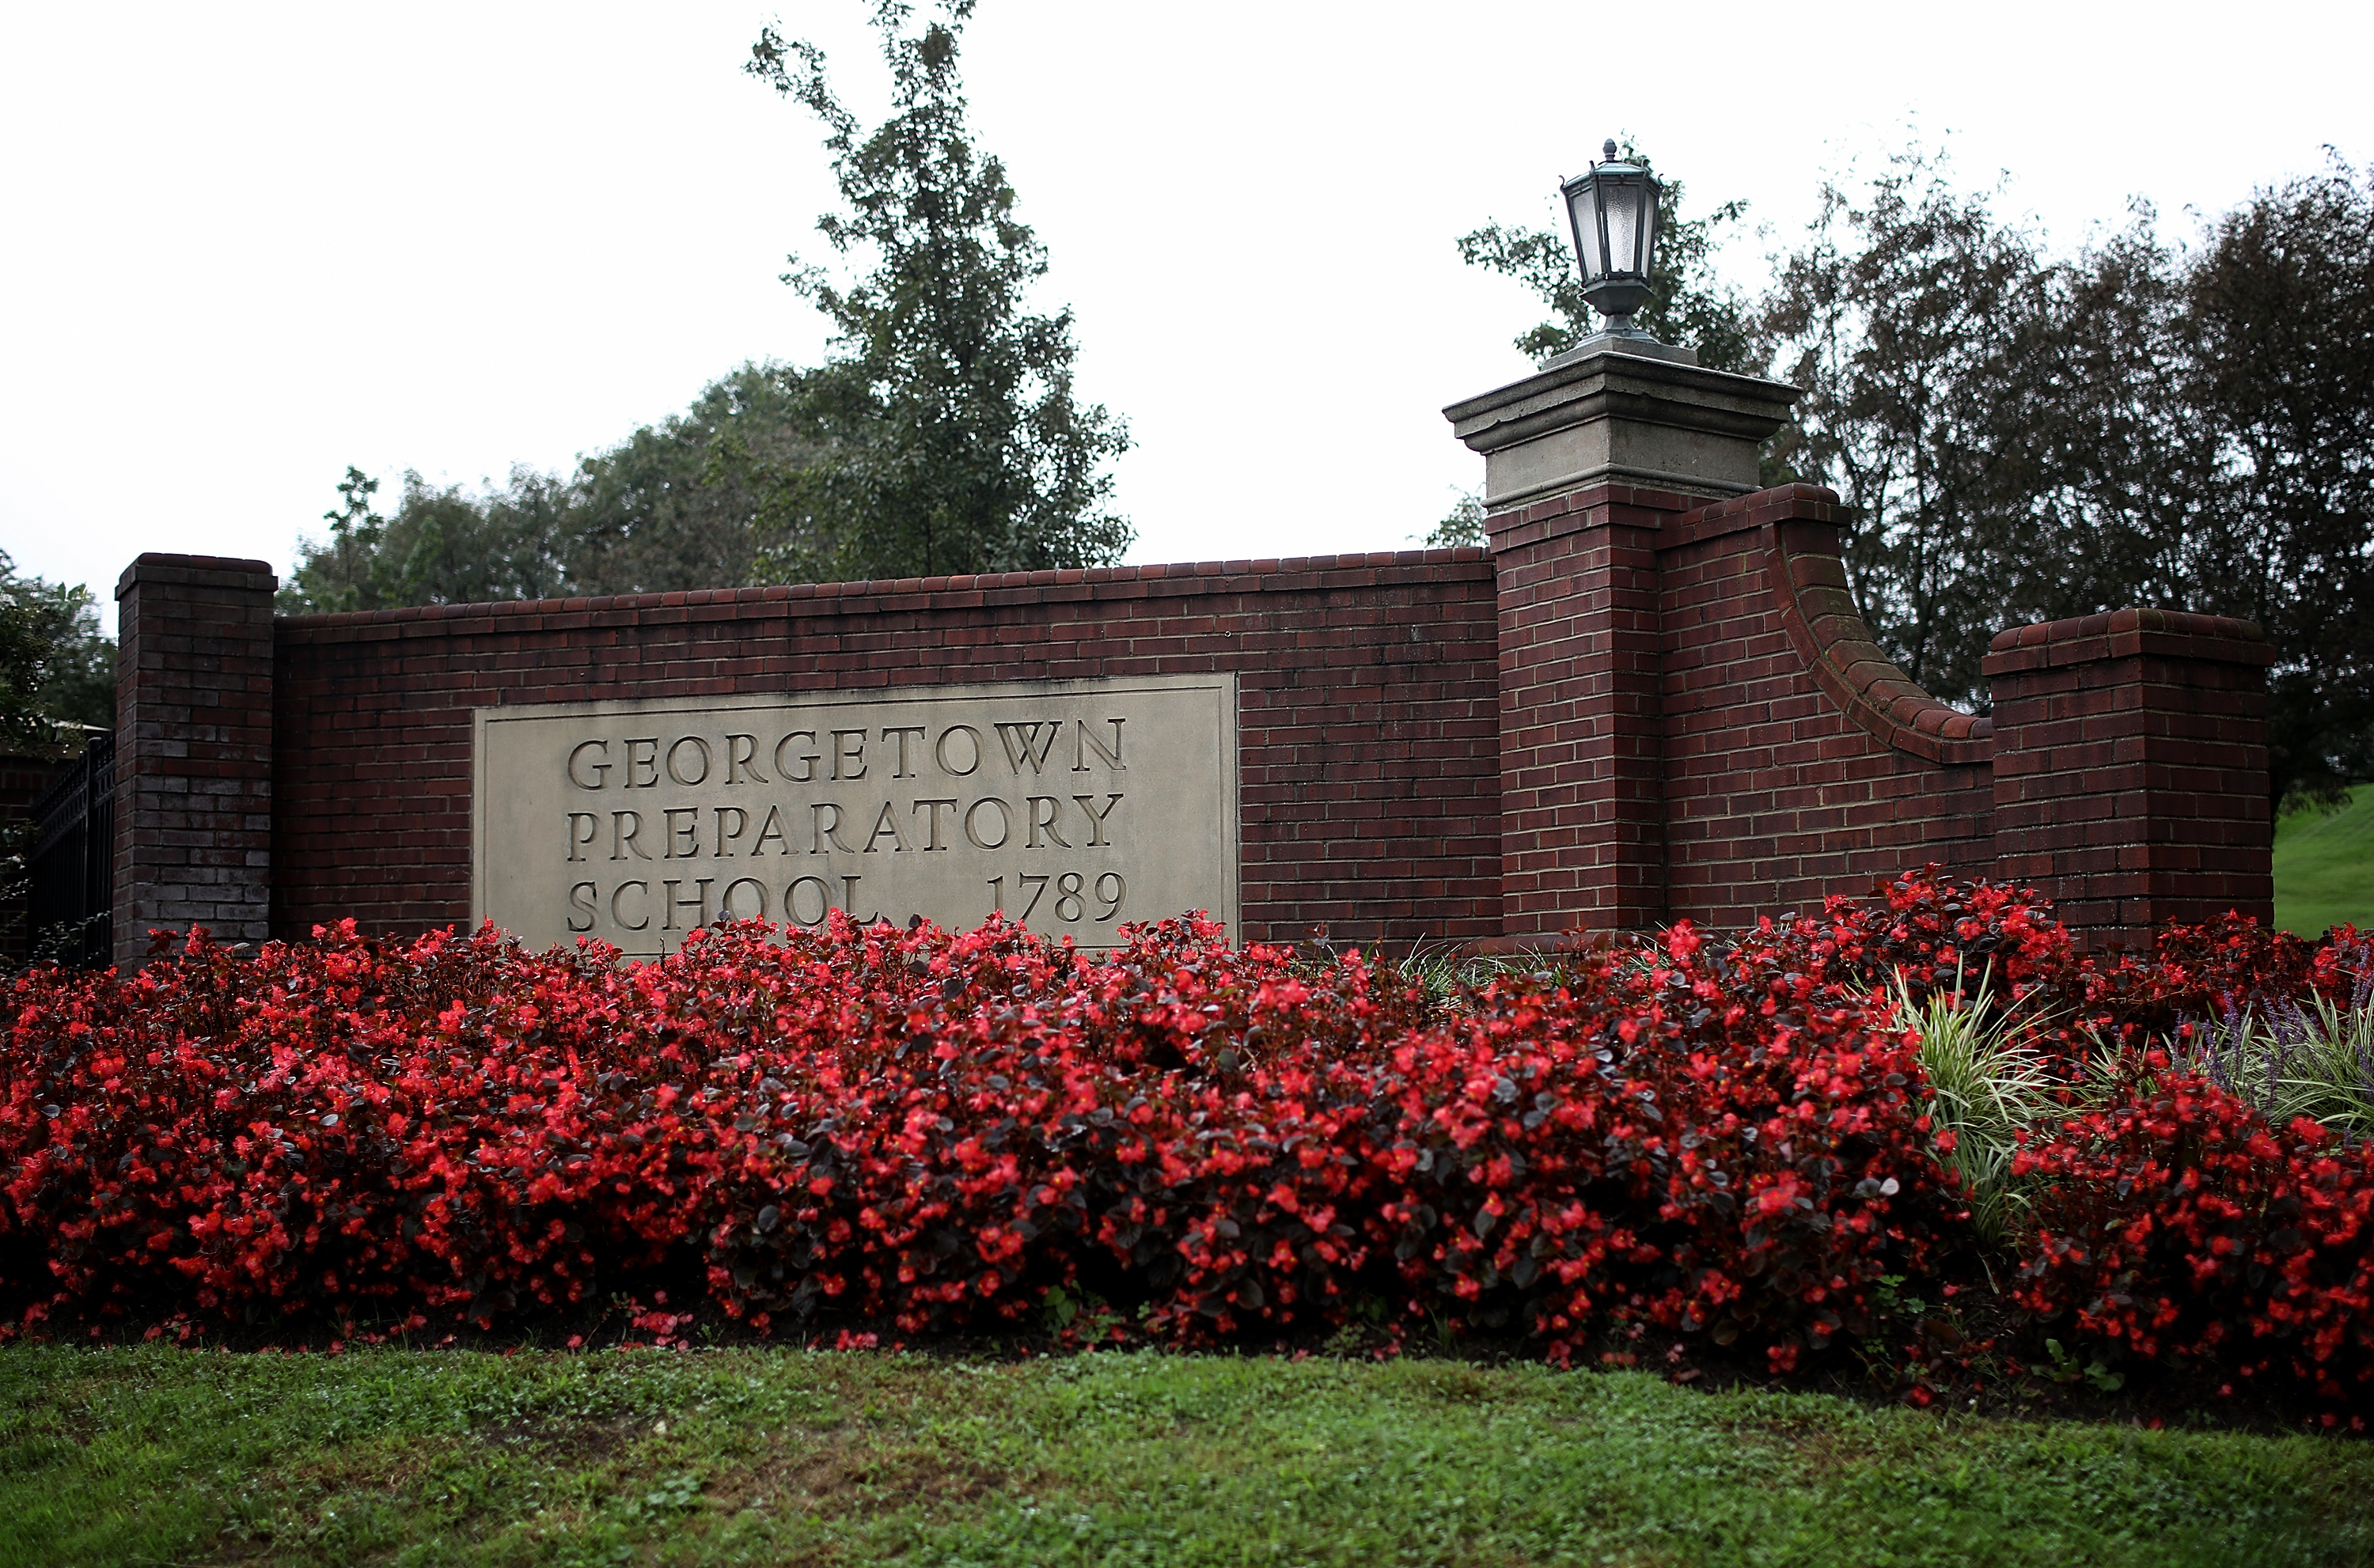 The entrance to the Georgetown Preparatory School in Bethesda, Maryland as seen on September 18, 2018. (Win McNamee/Getty Images)